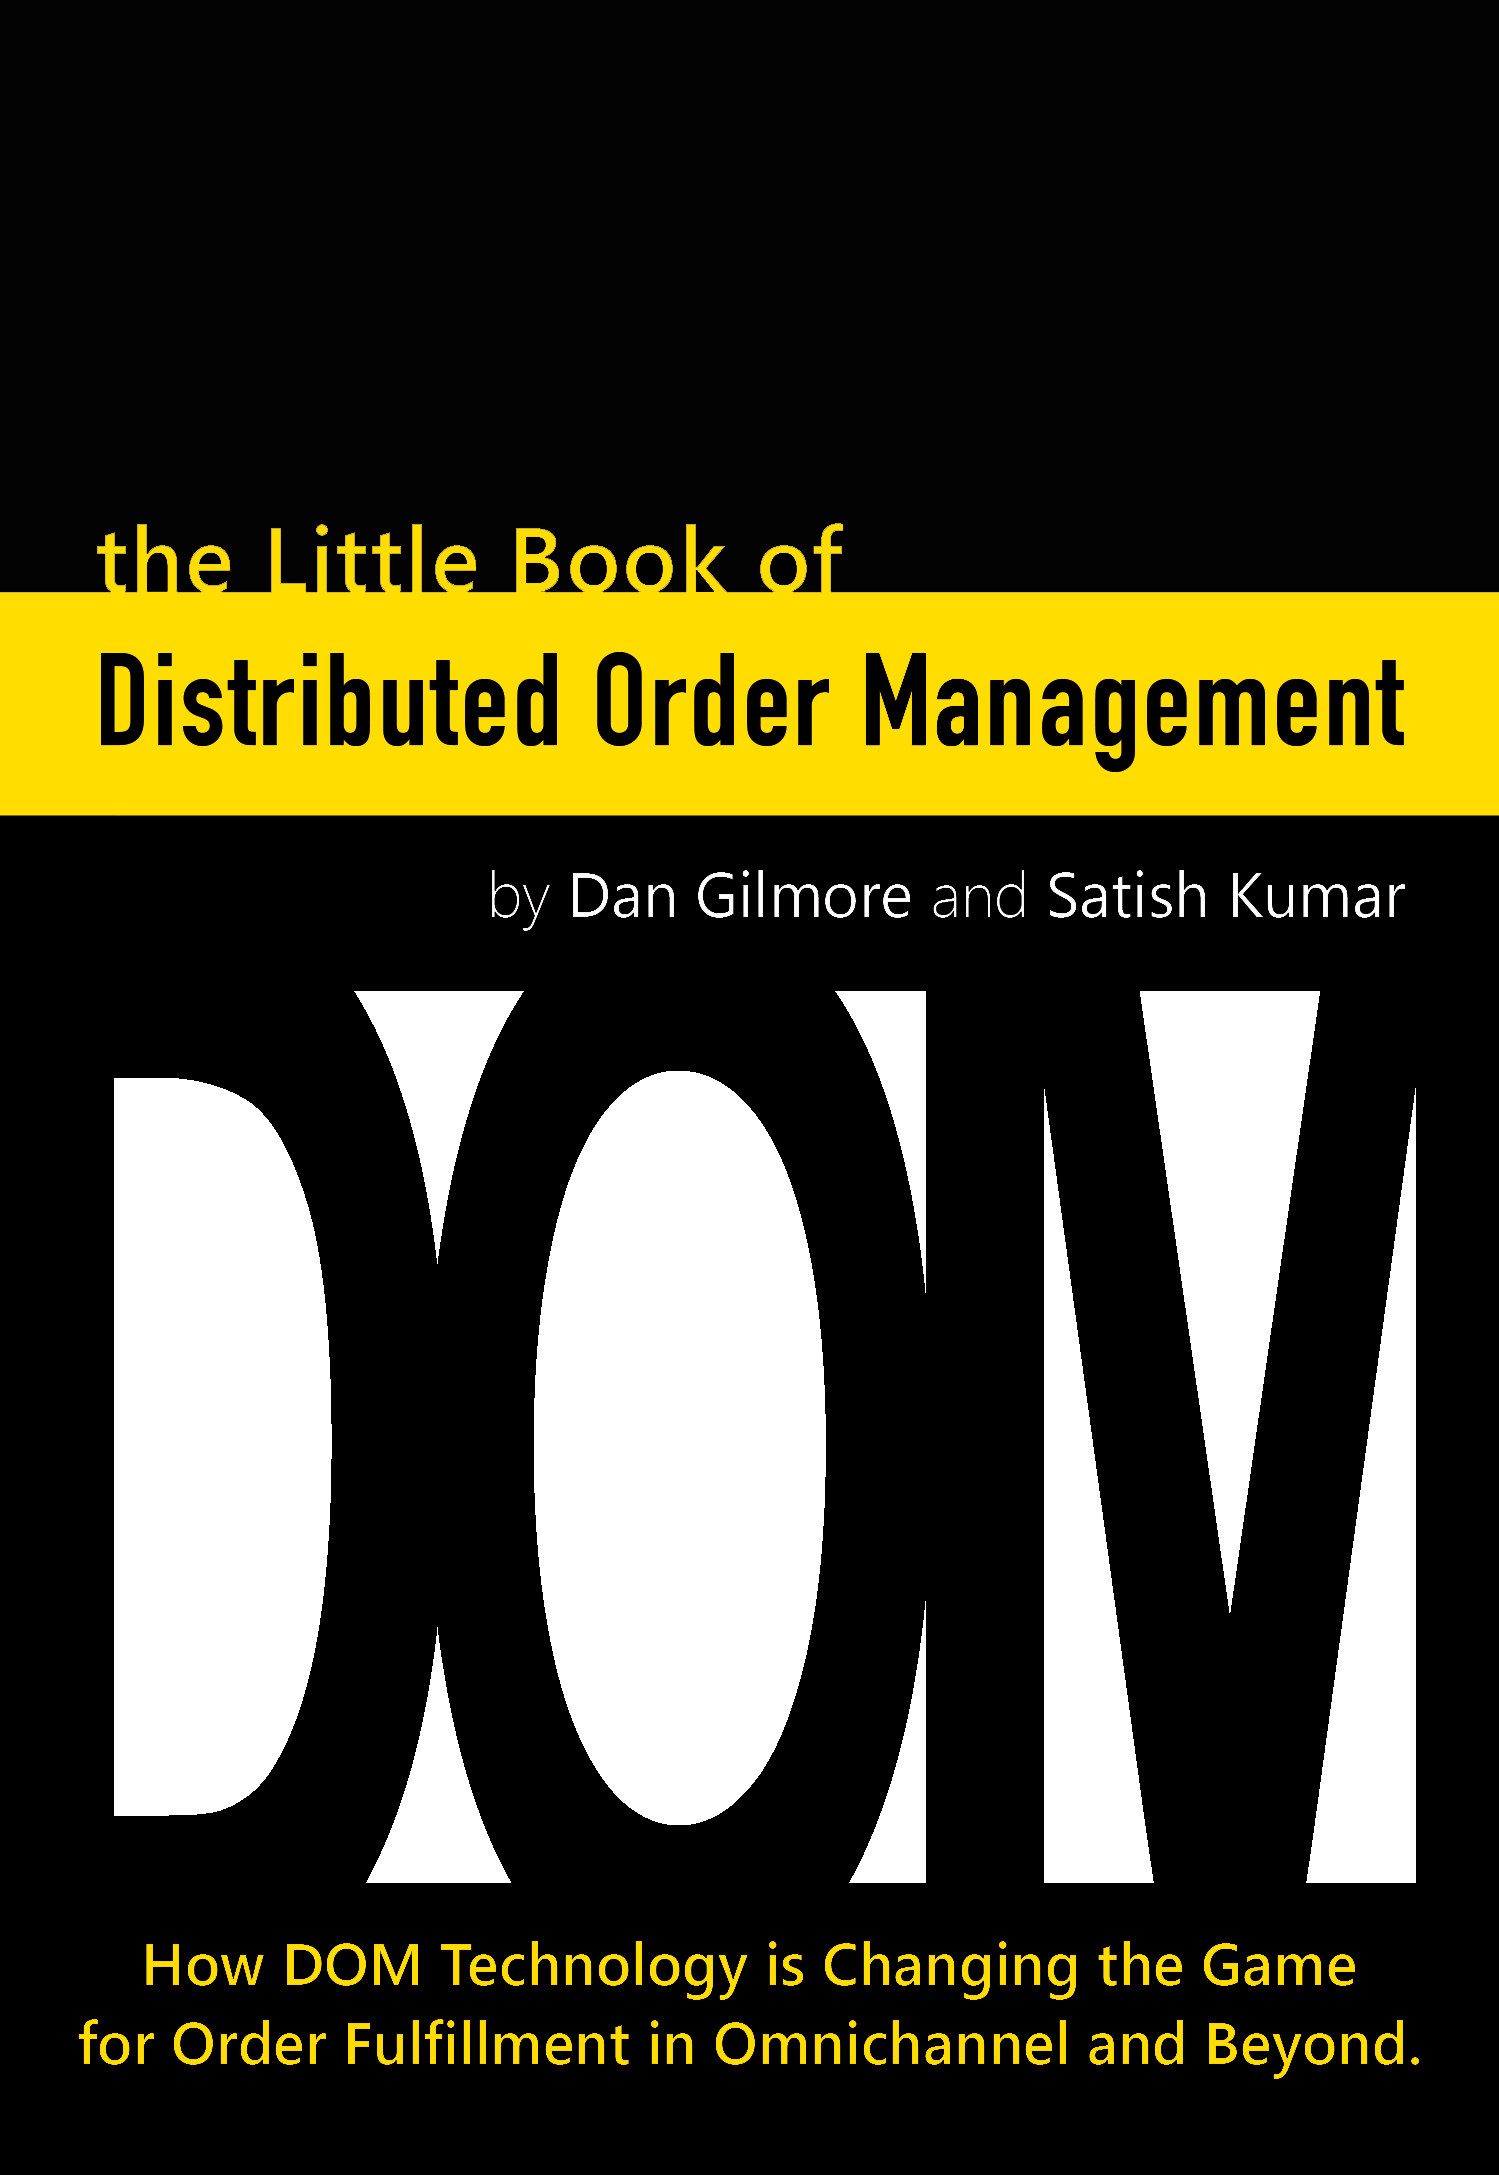 Softeon Releases New Little Book of Distributed Order Management